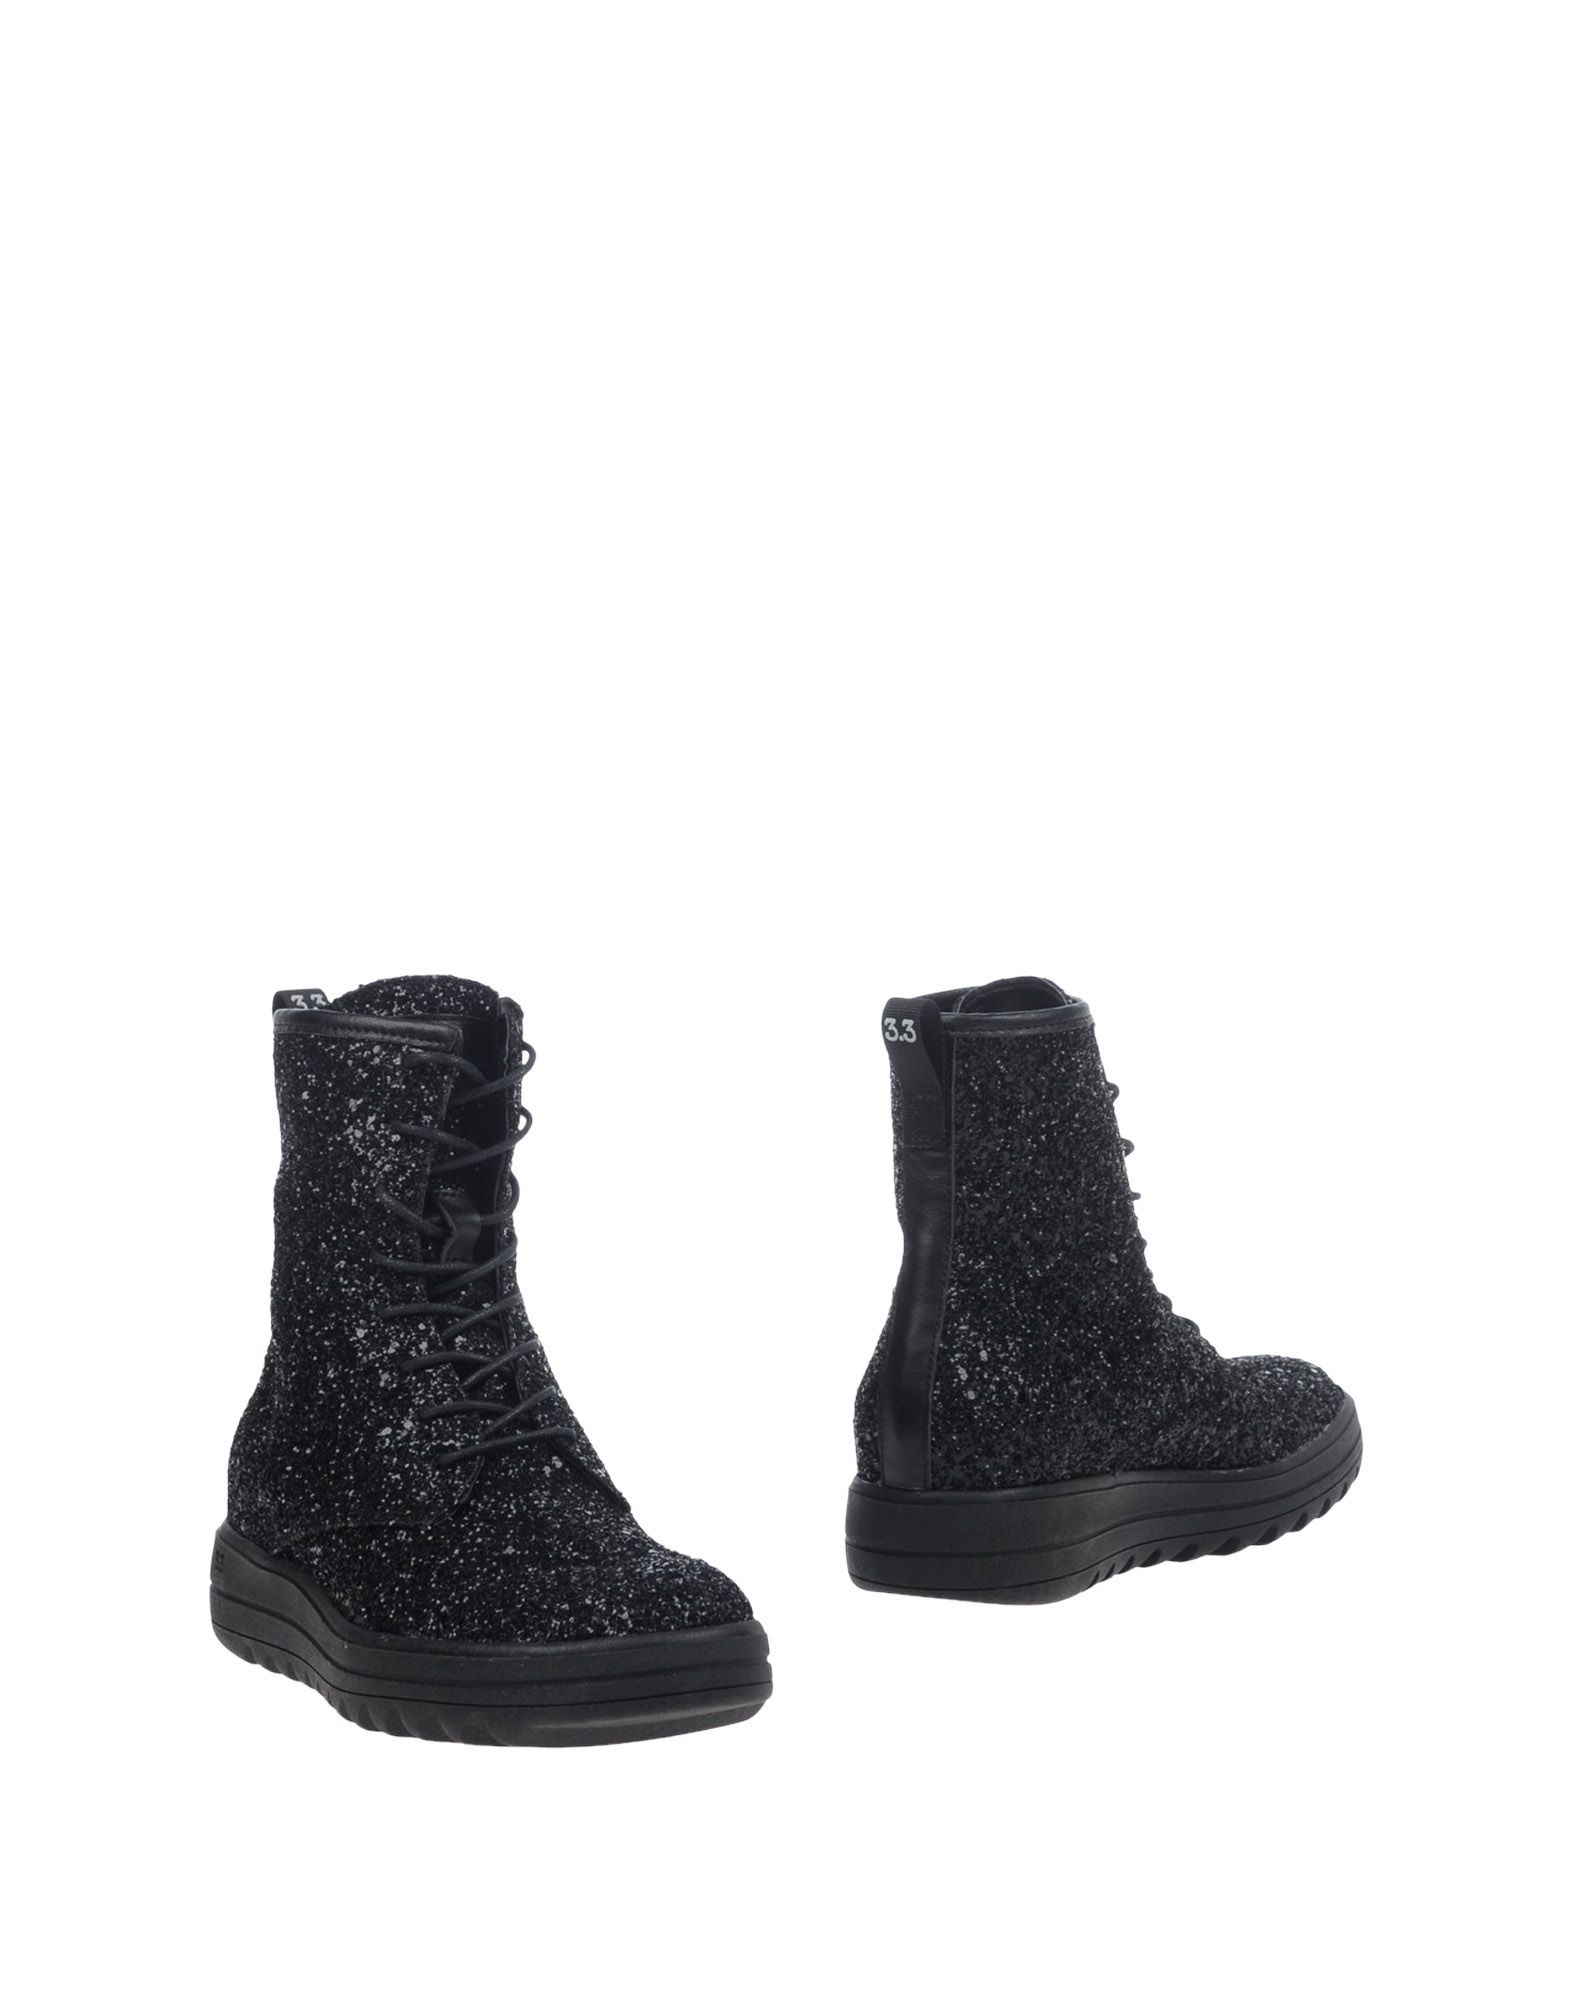 Bottine 3.3  Trepuntotre Femme - Bottines 3.3  Trepuntotre sur